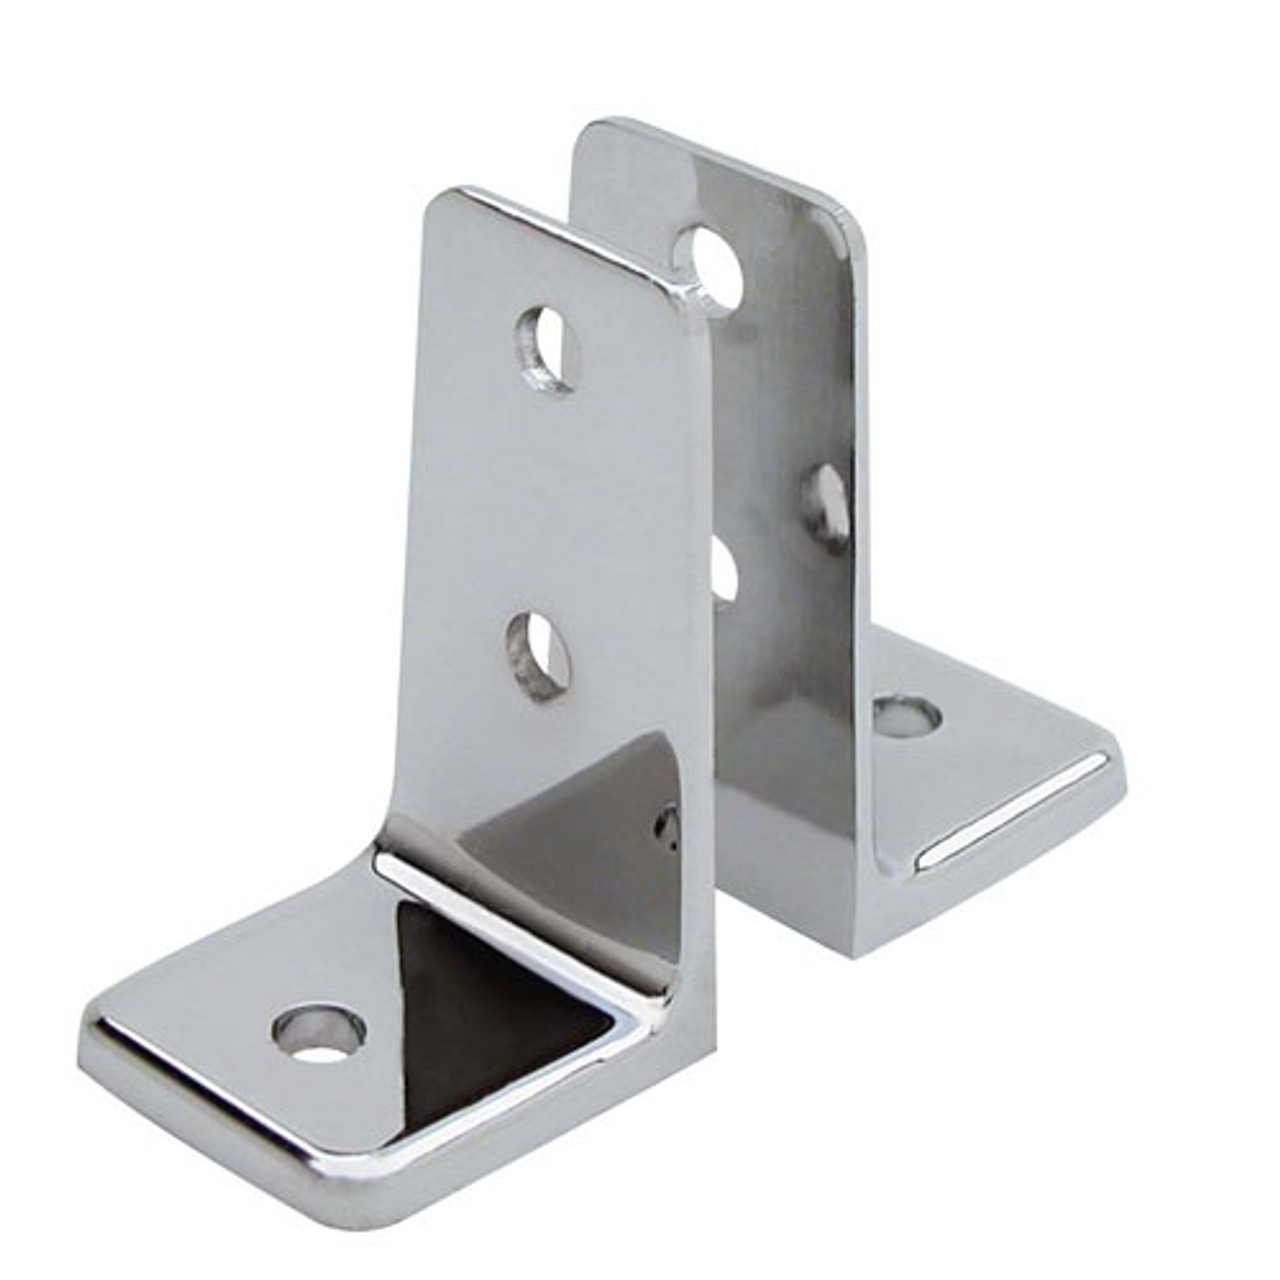 Global Partitions Stainless Steel Urinal Screen Bracket Set Harbor